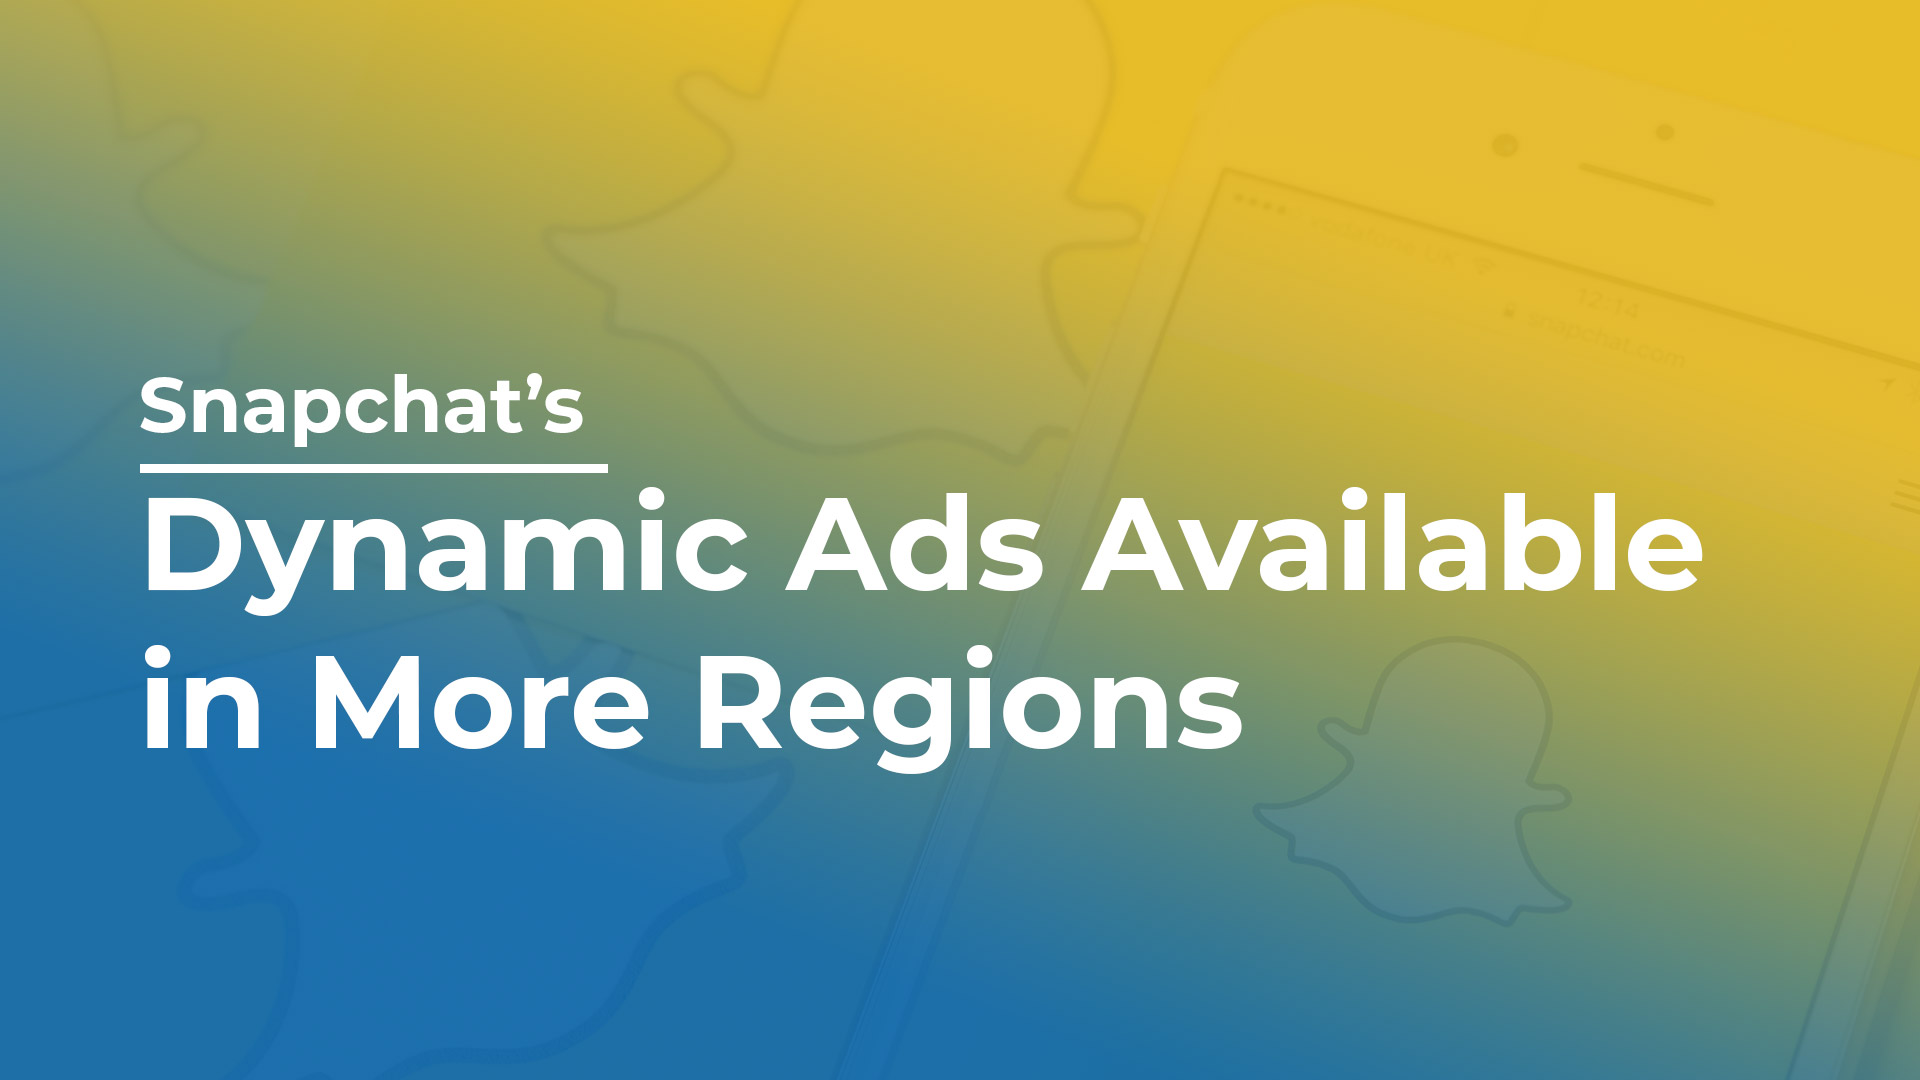 Snapchat's Dynamic Ads Available in More Regions